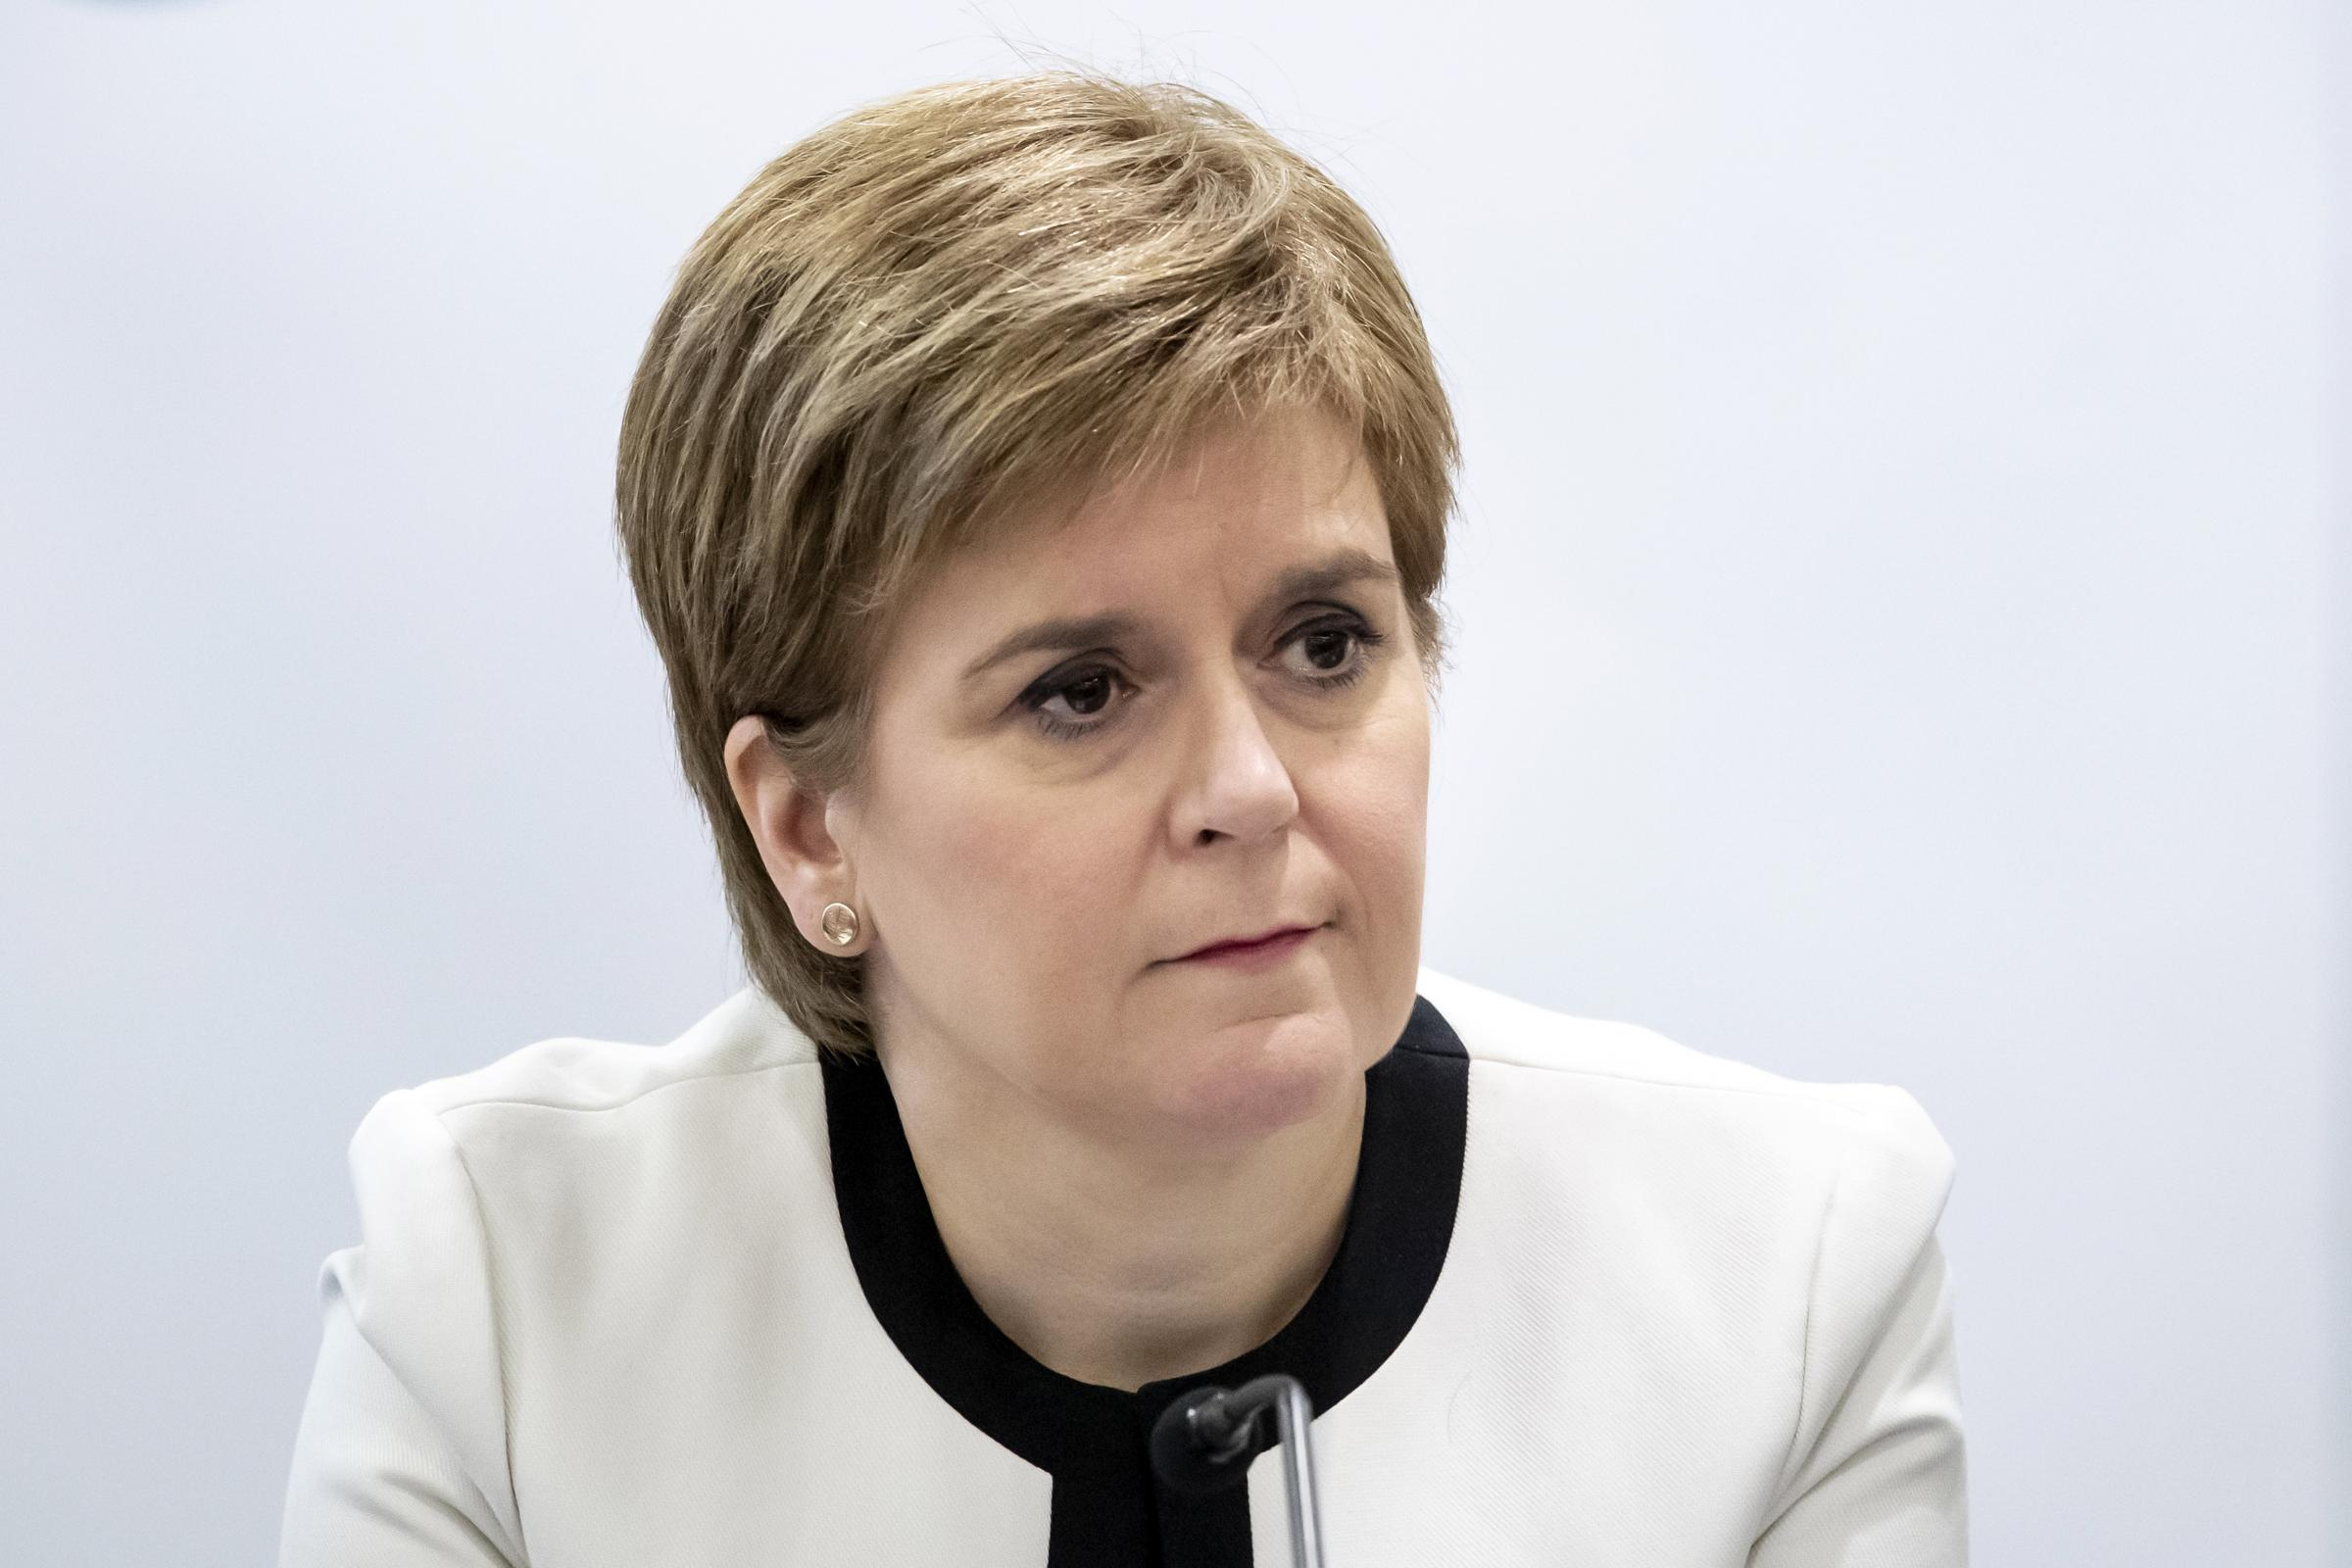 Nicola Sturgeon to request Section 30 order in a 'matter of weeks'